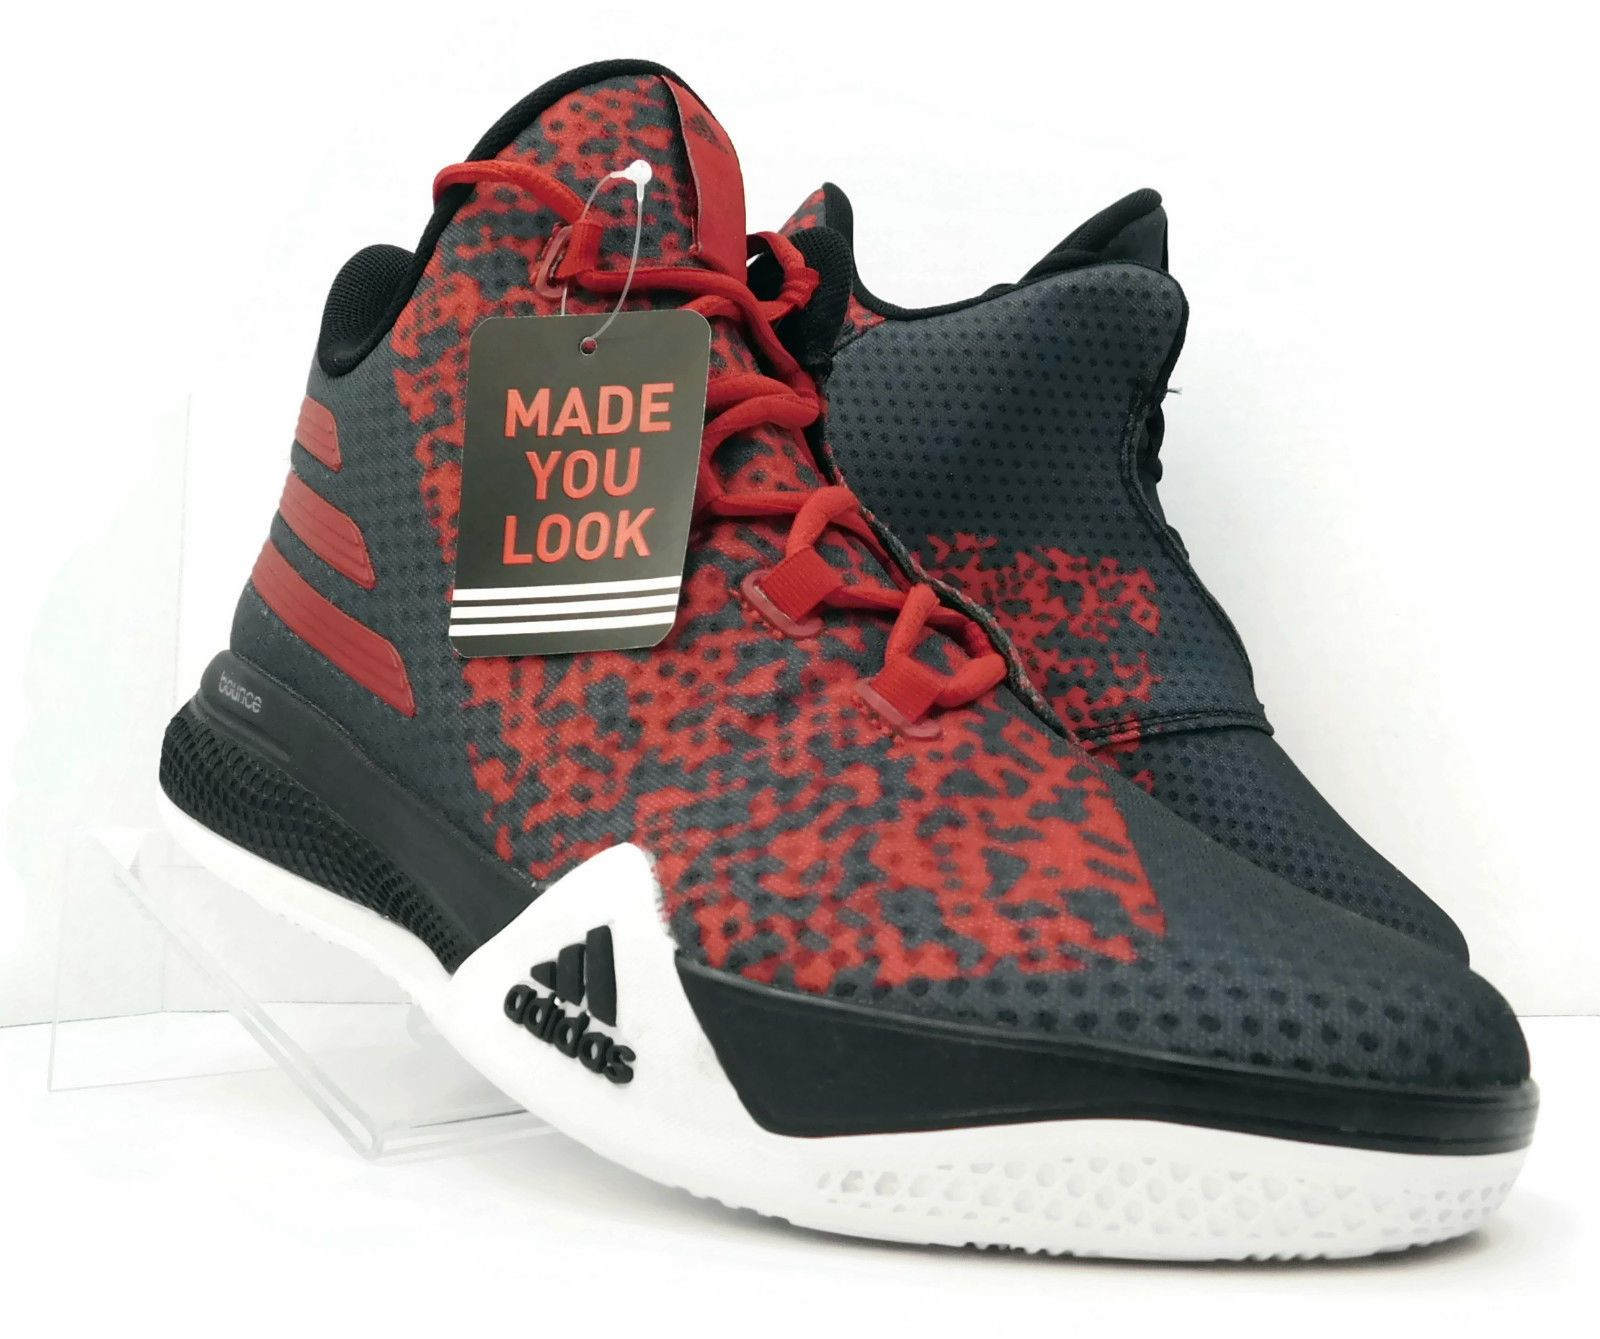 ADIDAS LIGHT EM UP 2 II BLACK RED D70129 US$149.00